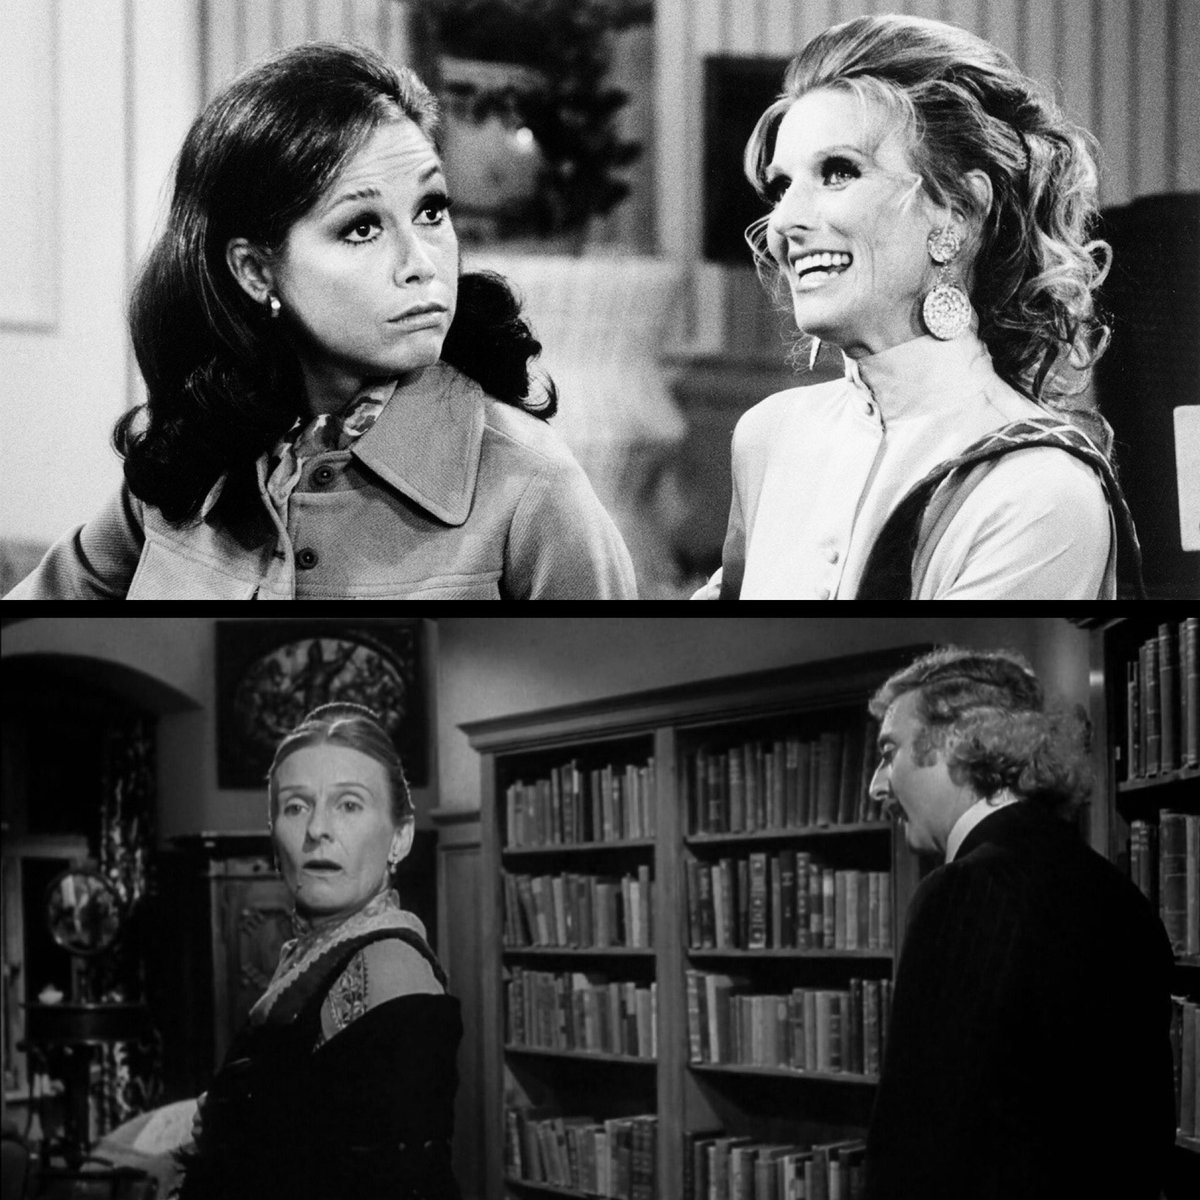 I loved Cloris Leachman in Young Frankenstein & mixing it up with @TheOnlyEdAsner on MTM. A #haiku in tribute:                                         Goodnight, Frau Blücher We thought you'd live forever Thank you for the laughs  #ripclorisleachman #legend  #poetry #poem